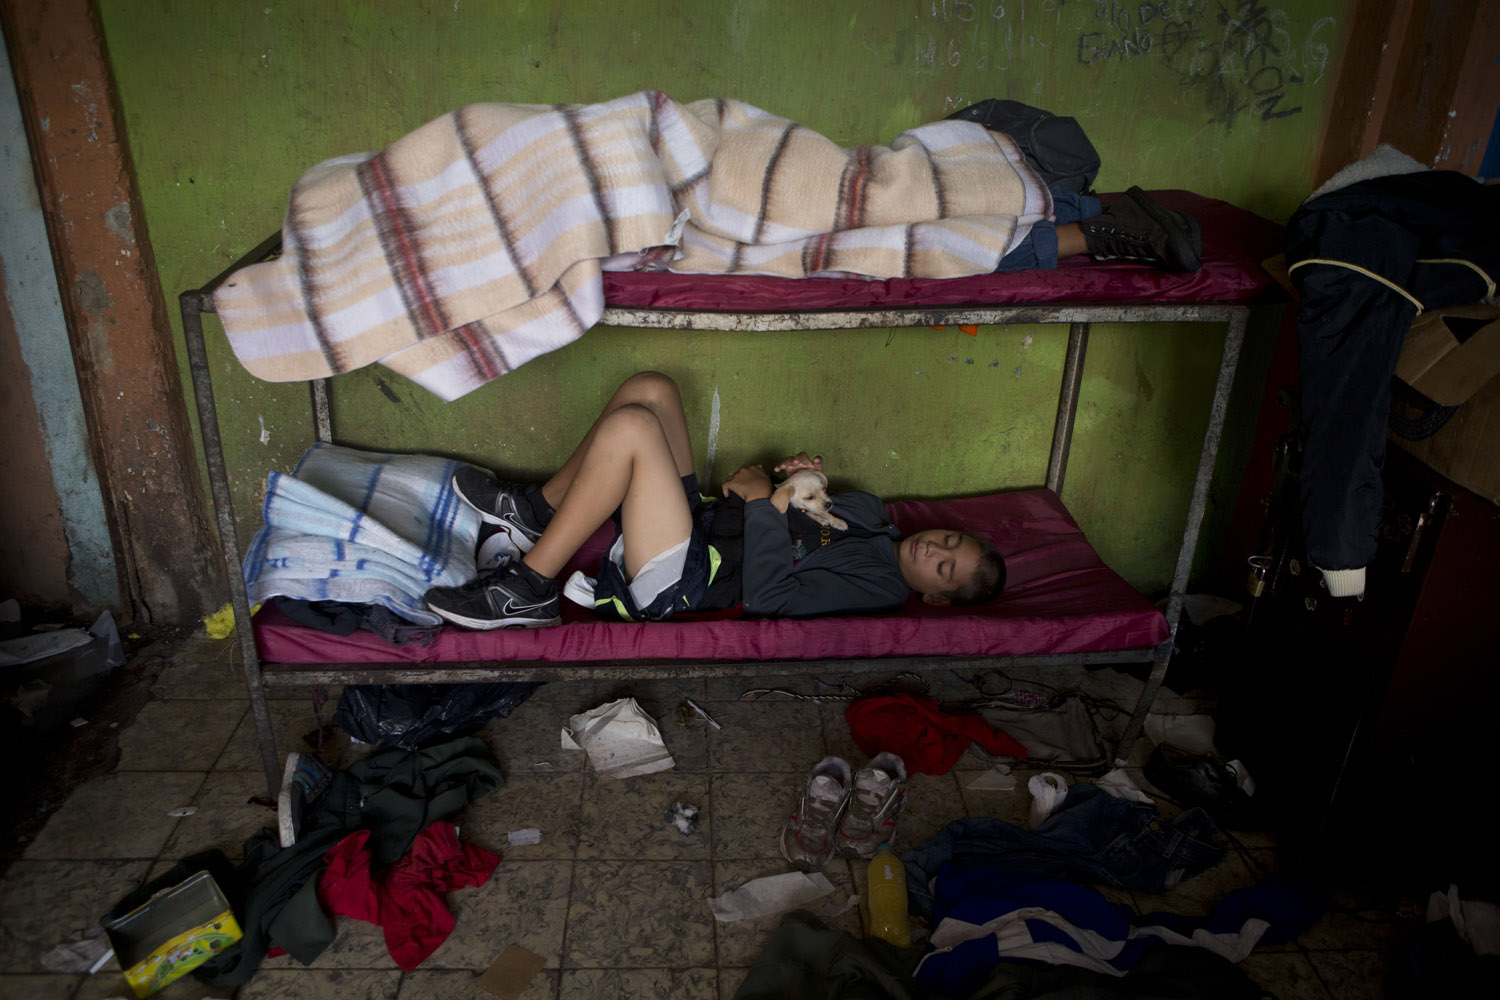 Jul. 17, 2014. A boy cuddles a puppy as he rests on a bunk inside The Great Family group home after a police raid, in Zamora, Mexico.